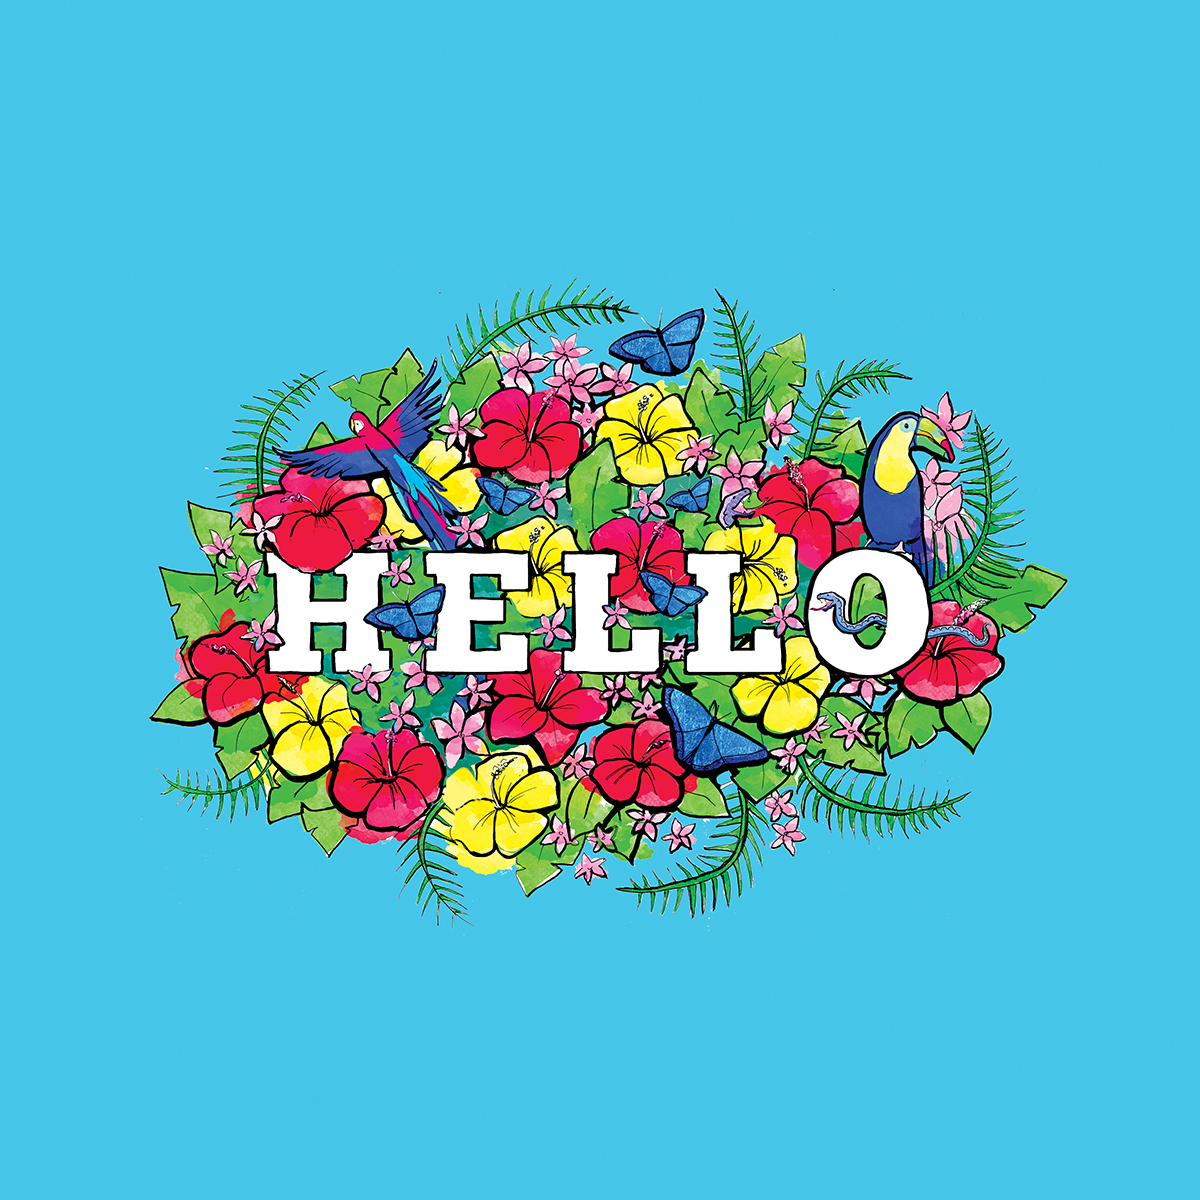 hello illustration